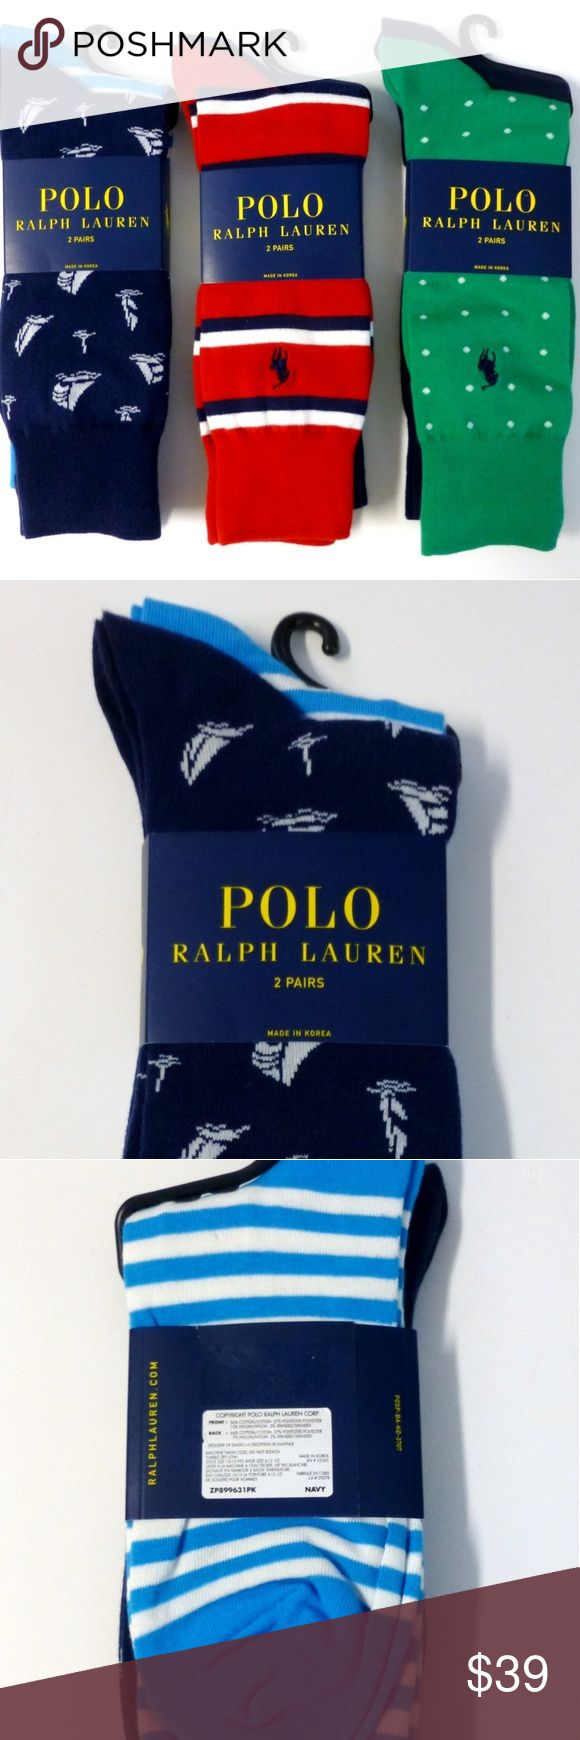 Polo Ralph Lauren 6 pairs cotton blend socks nwt New with tags. Total of 6 pairs (3 packs of 2). 1 navy sailboat pattern. 1 turquoise striped. 1 red striped. 1 green dot pattern. 2 solid navy. The red and the green socks have the pony logo. Polo by Ralph Lauren Underwear & Socks Casual Socks